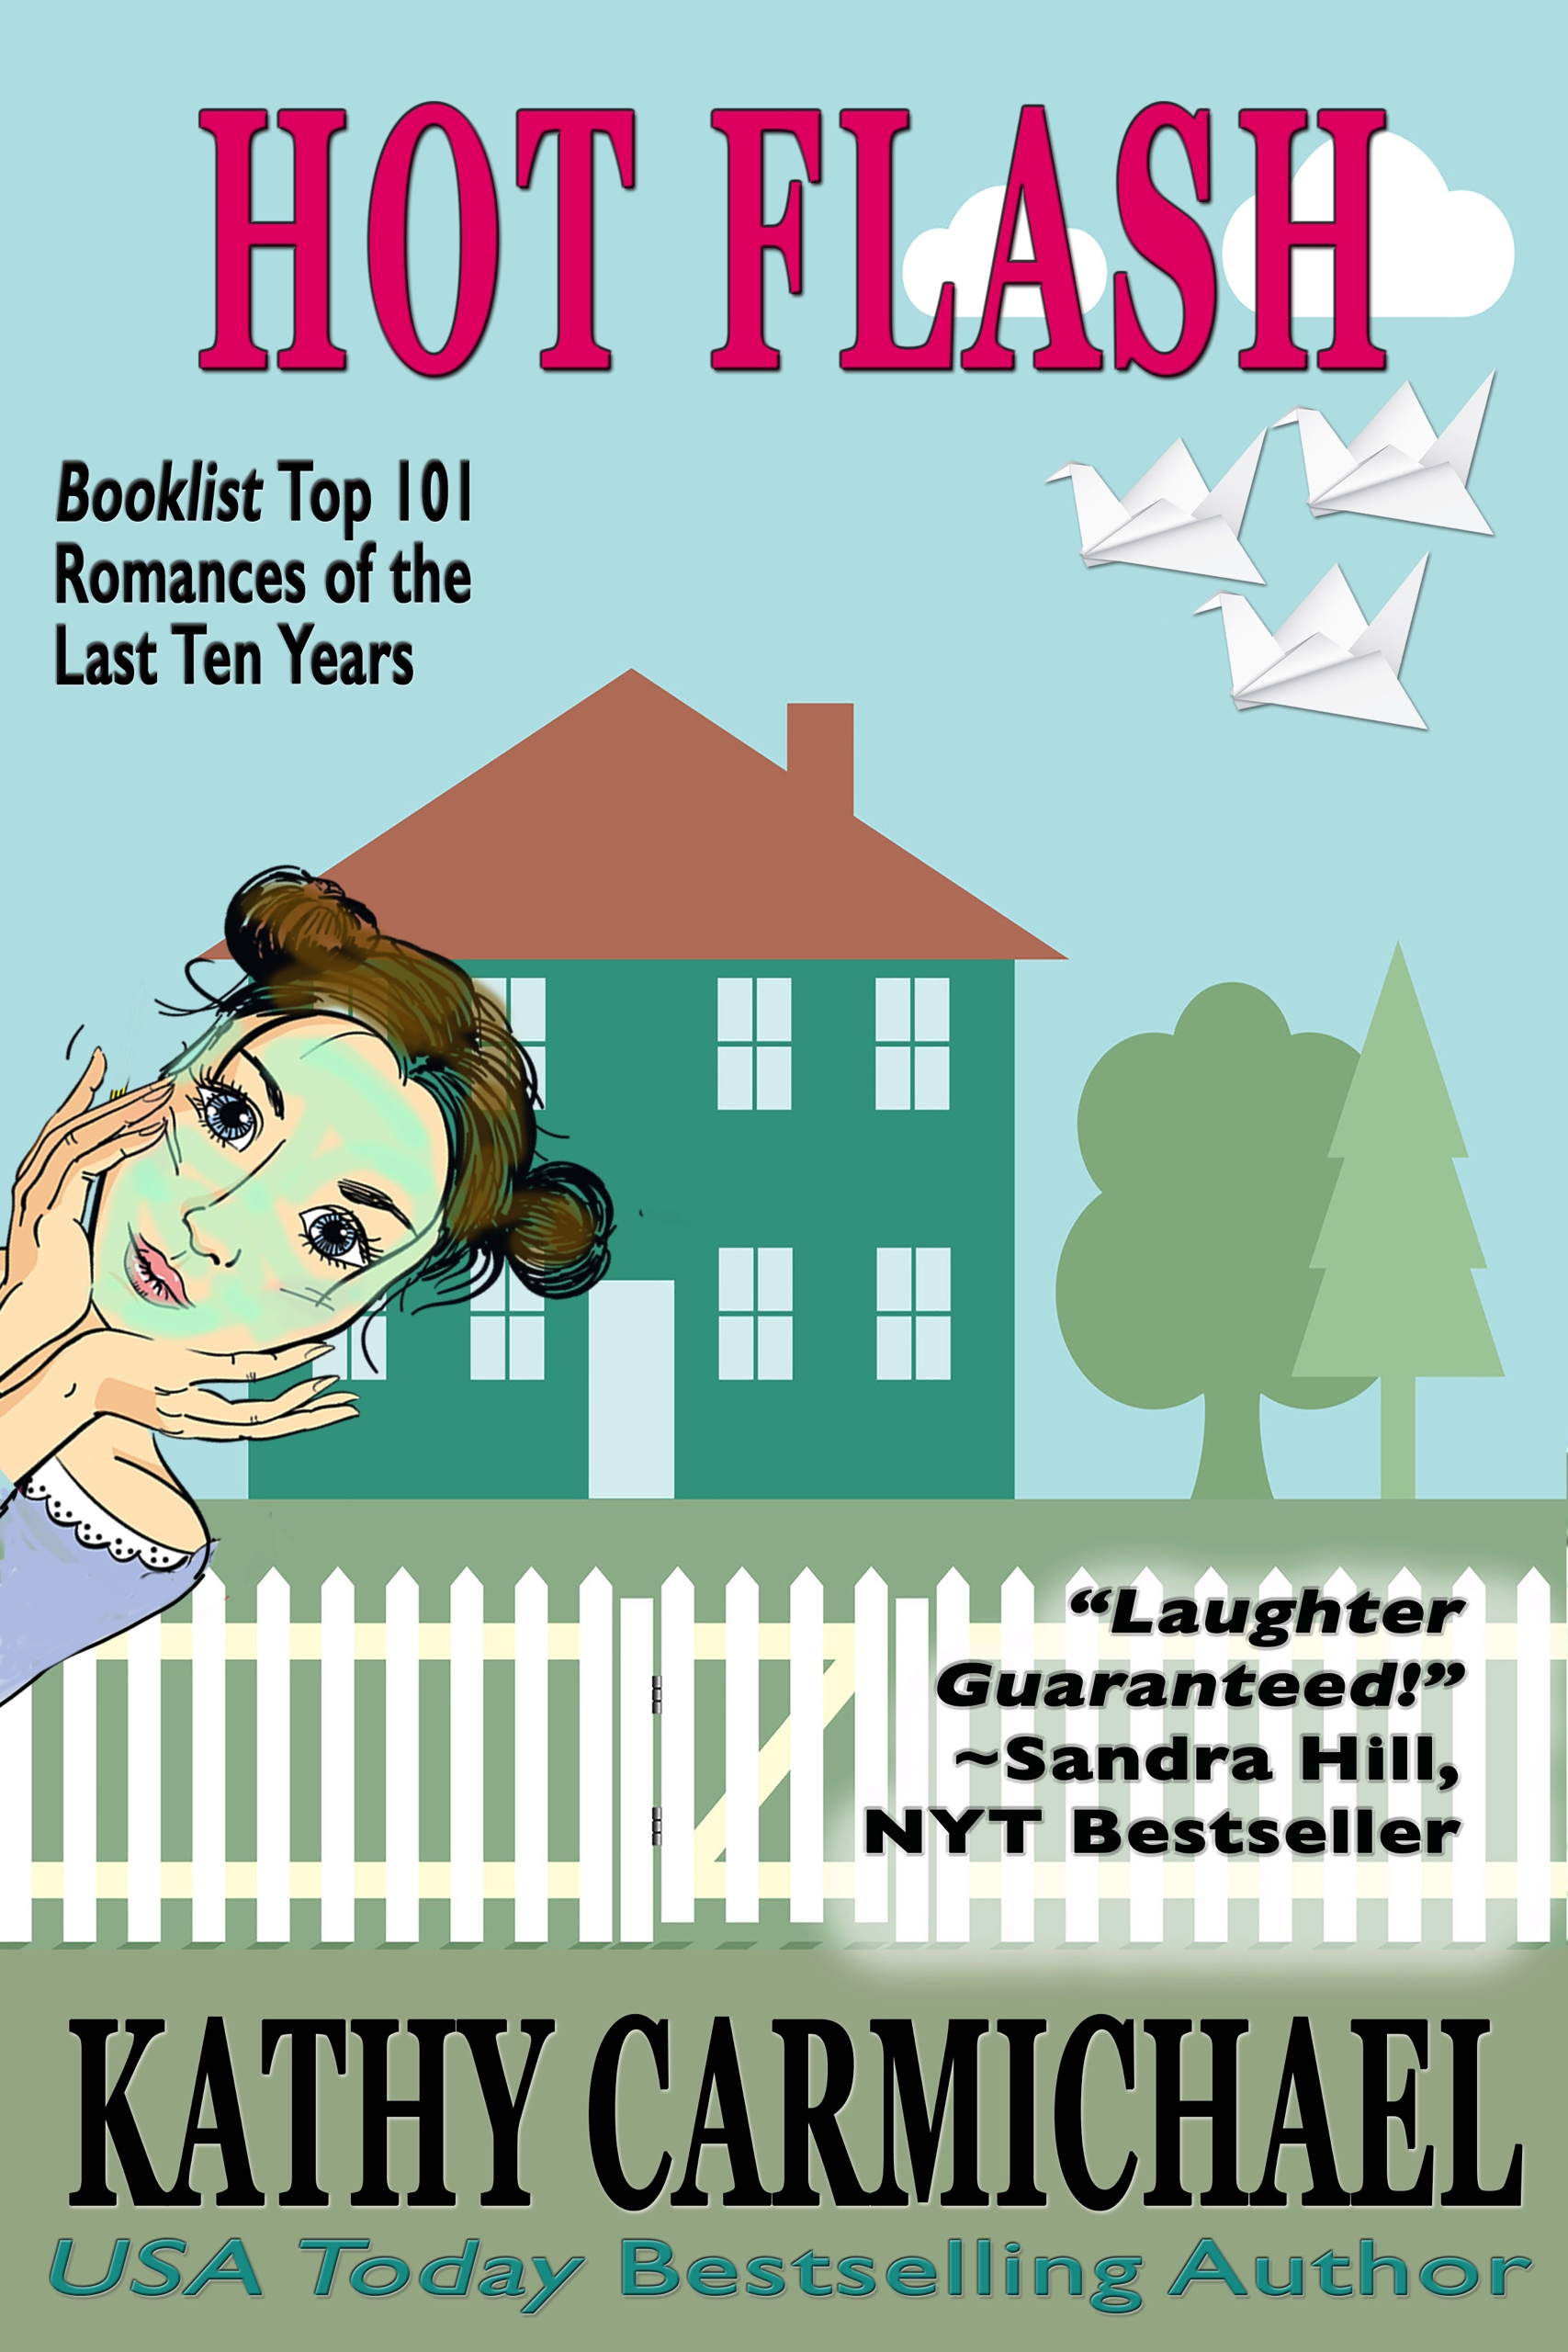 Romantic Comedy and Humorous Mystery Author | Kathy Carmichael